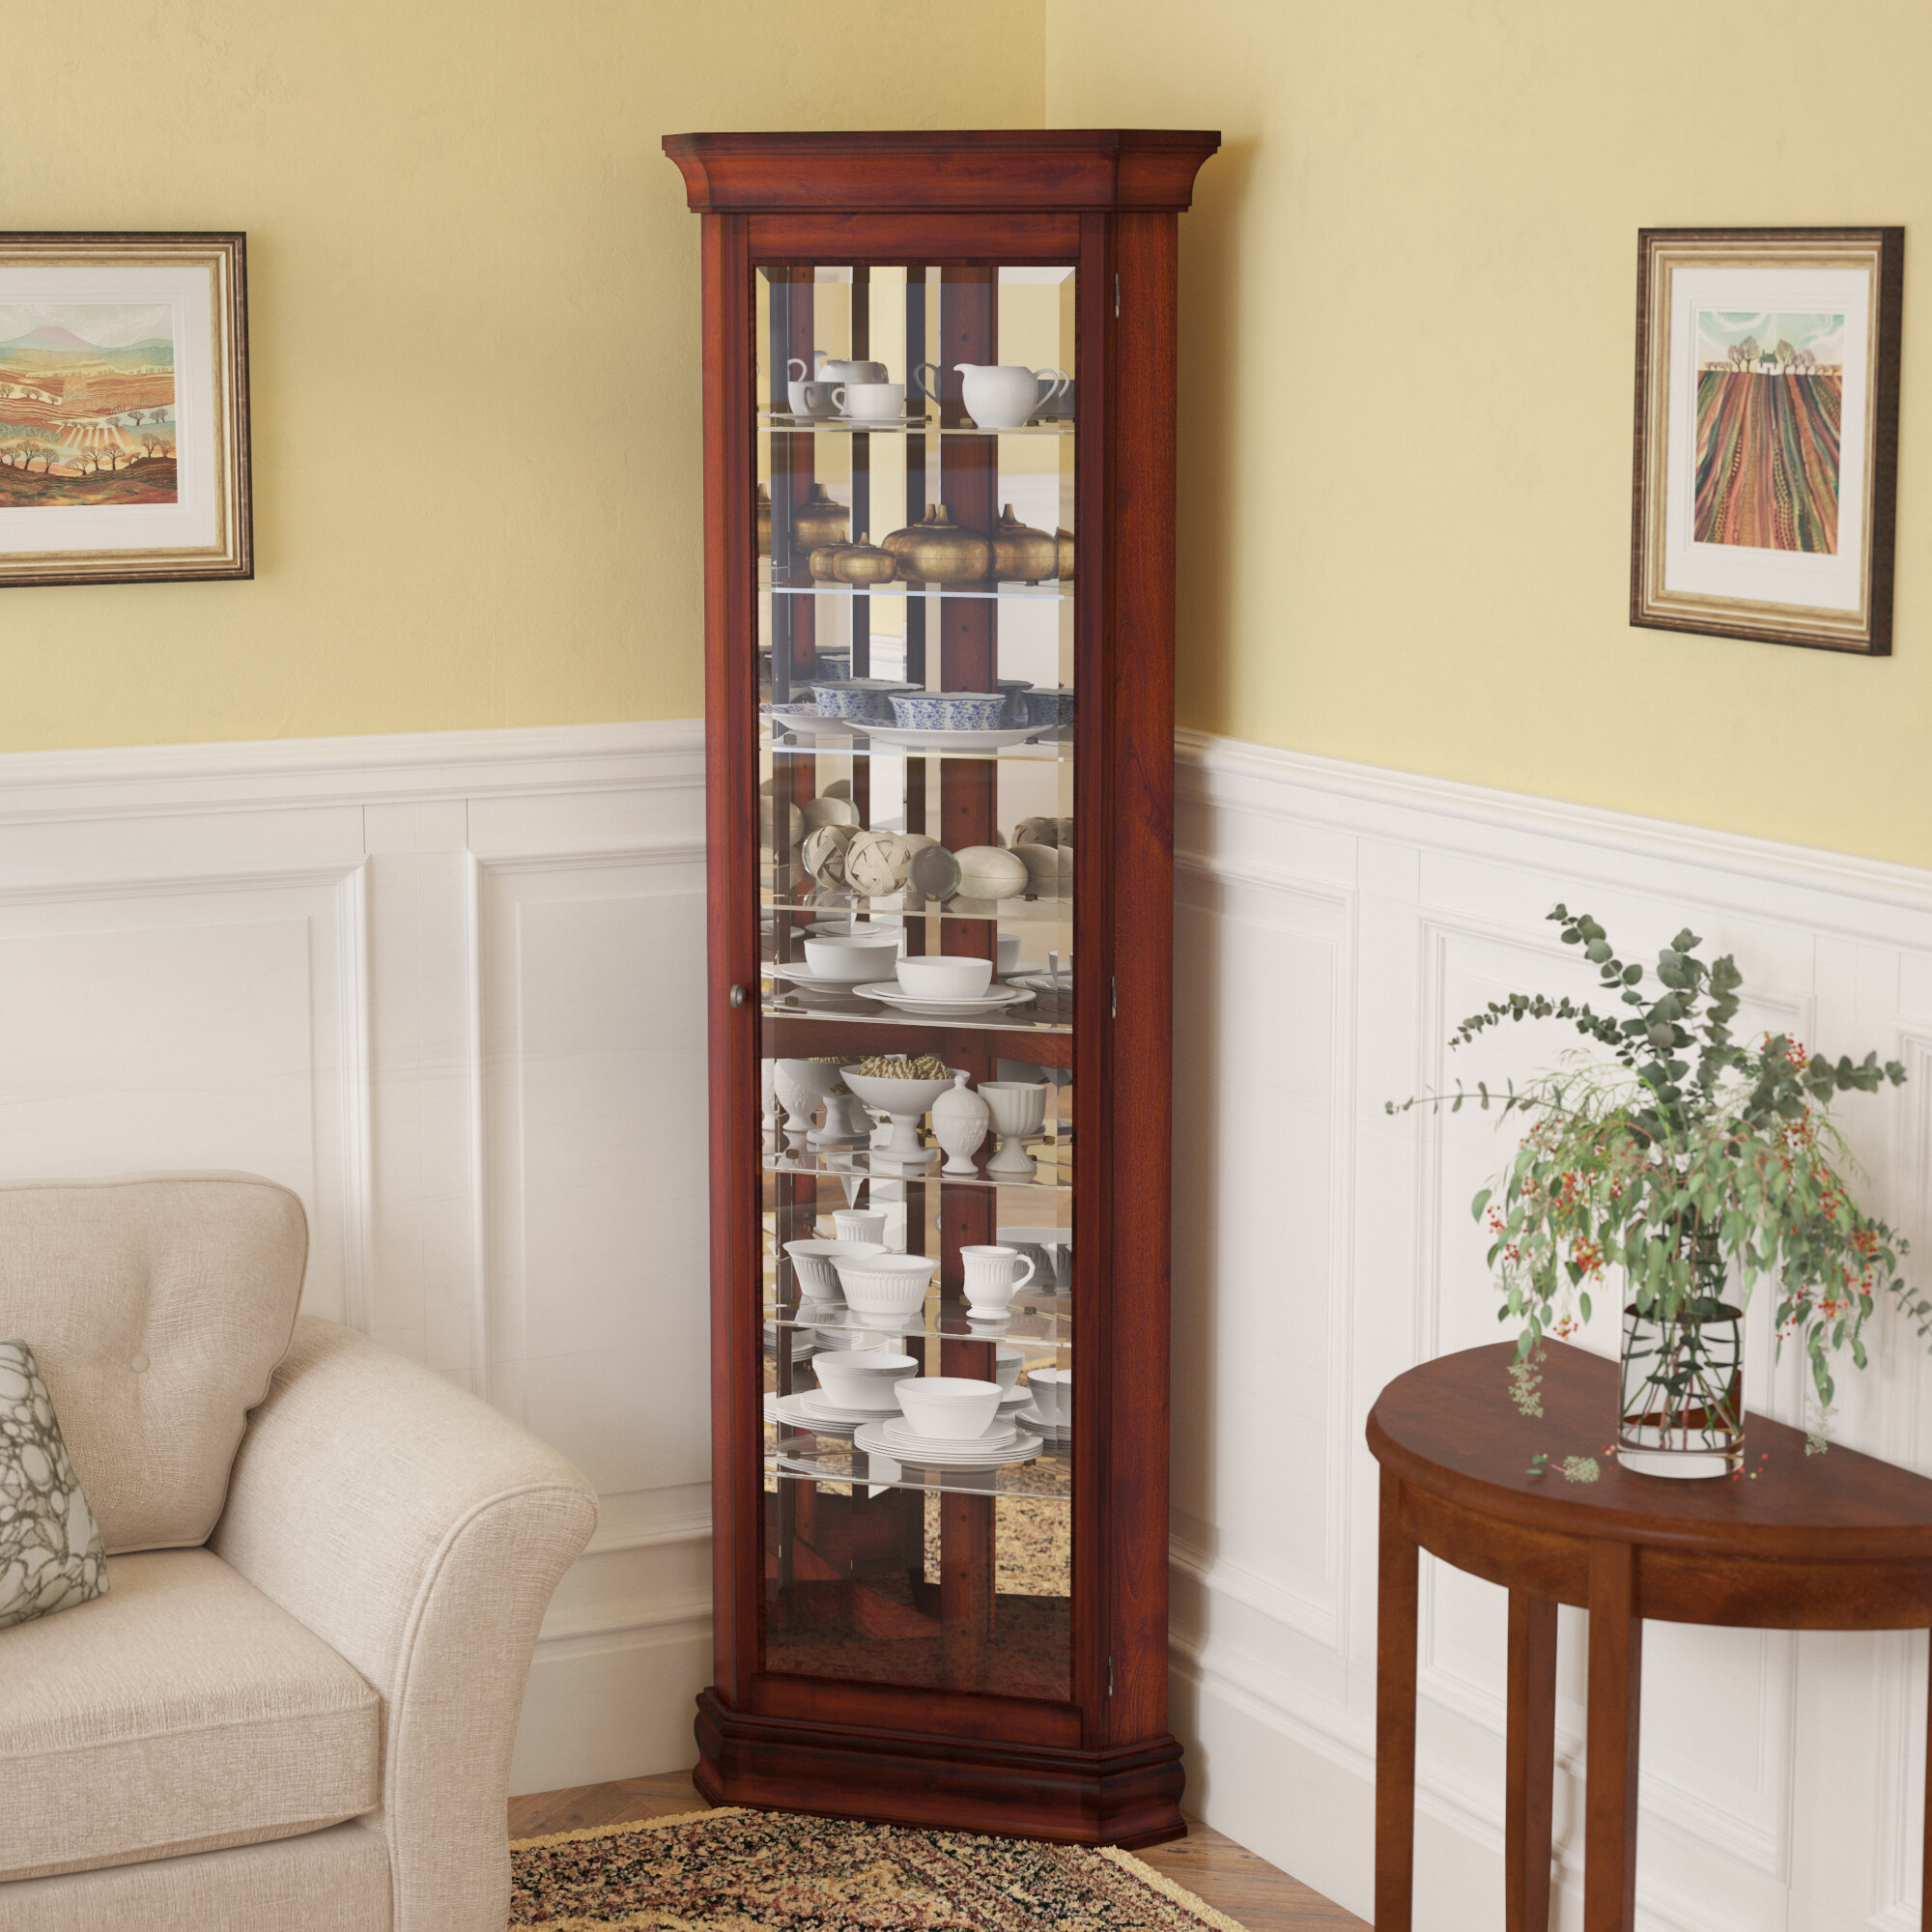 Darby Home Co Nancy Lighted Corner Curio Cabinet & Reviews | Wayfair